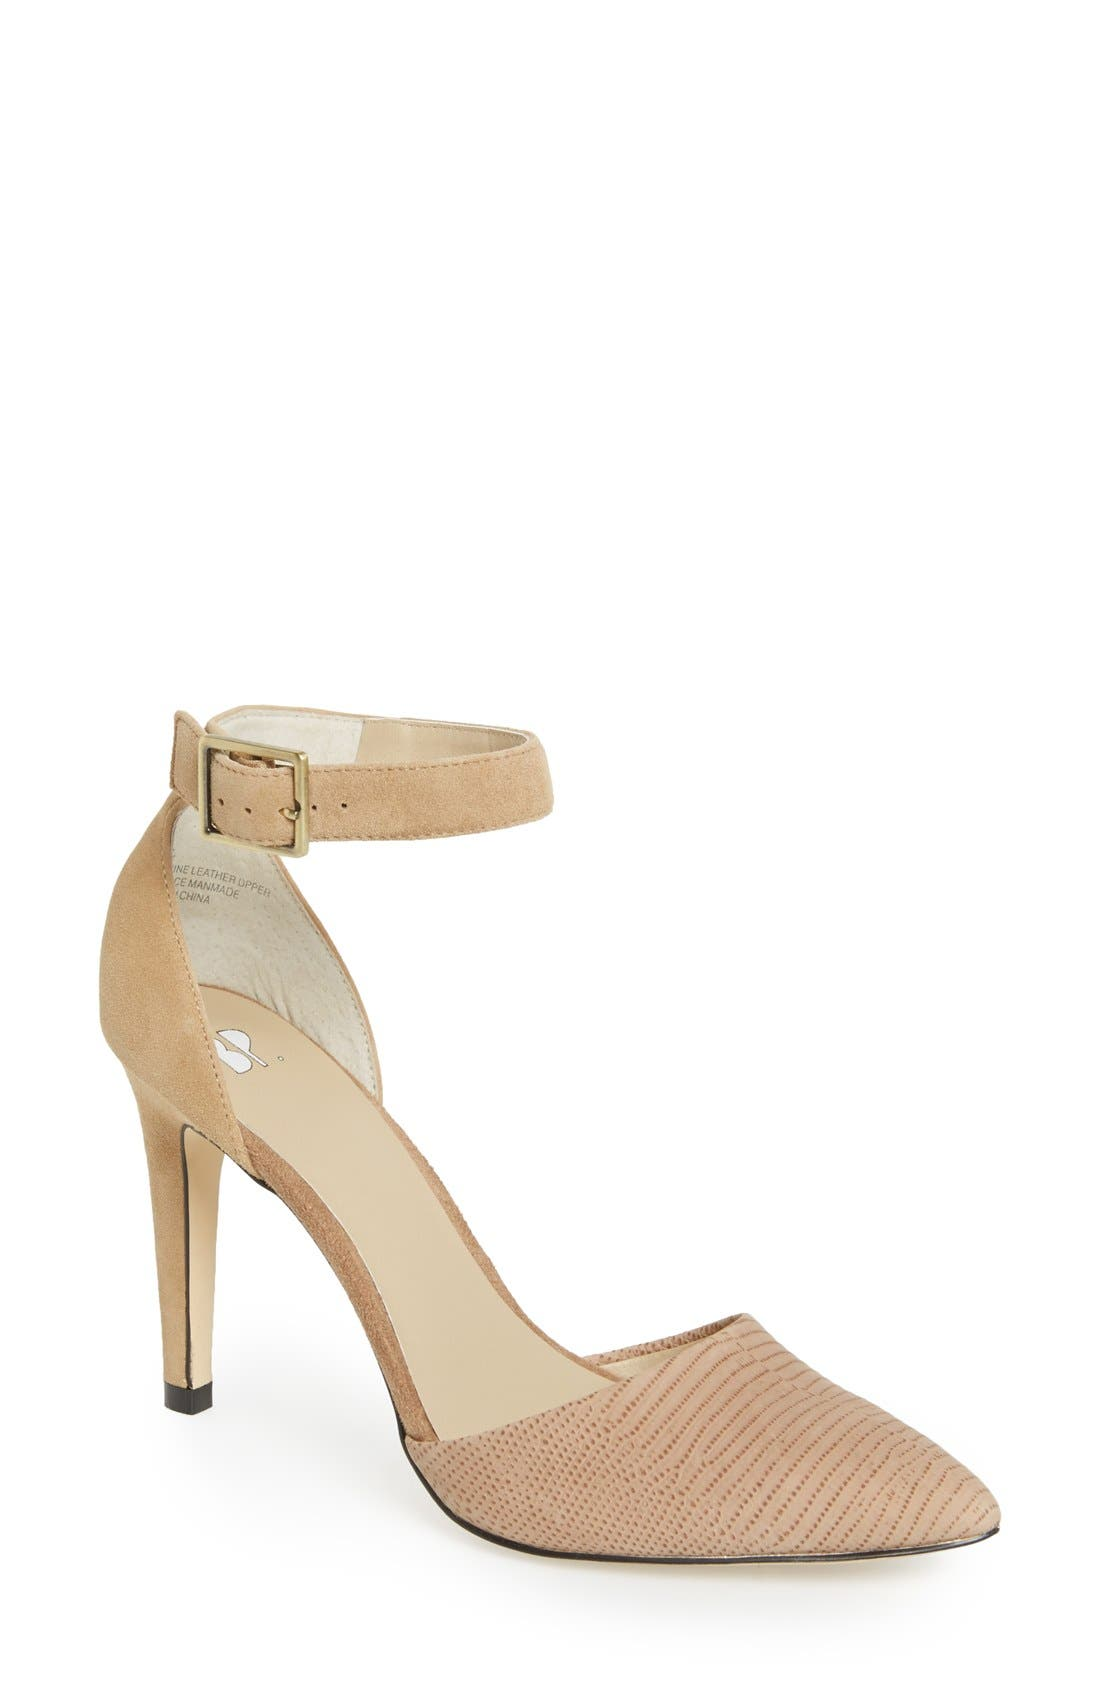 'Mallory' Ankle Strap Pump,                         Main,                         color, Beige/ Nude